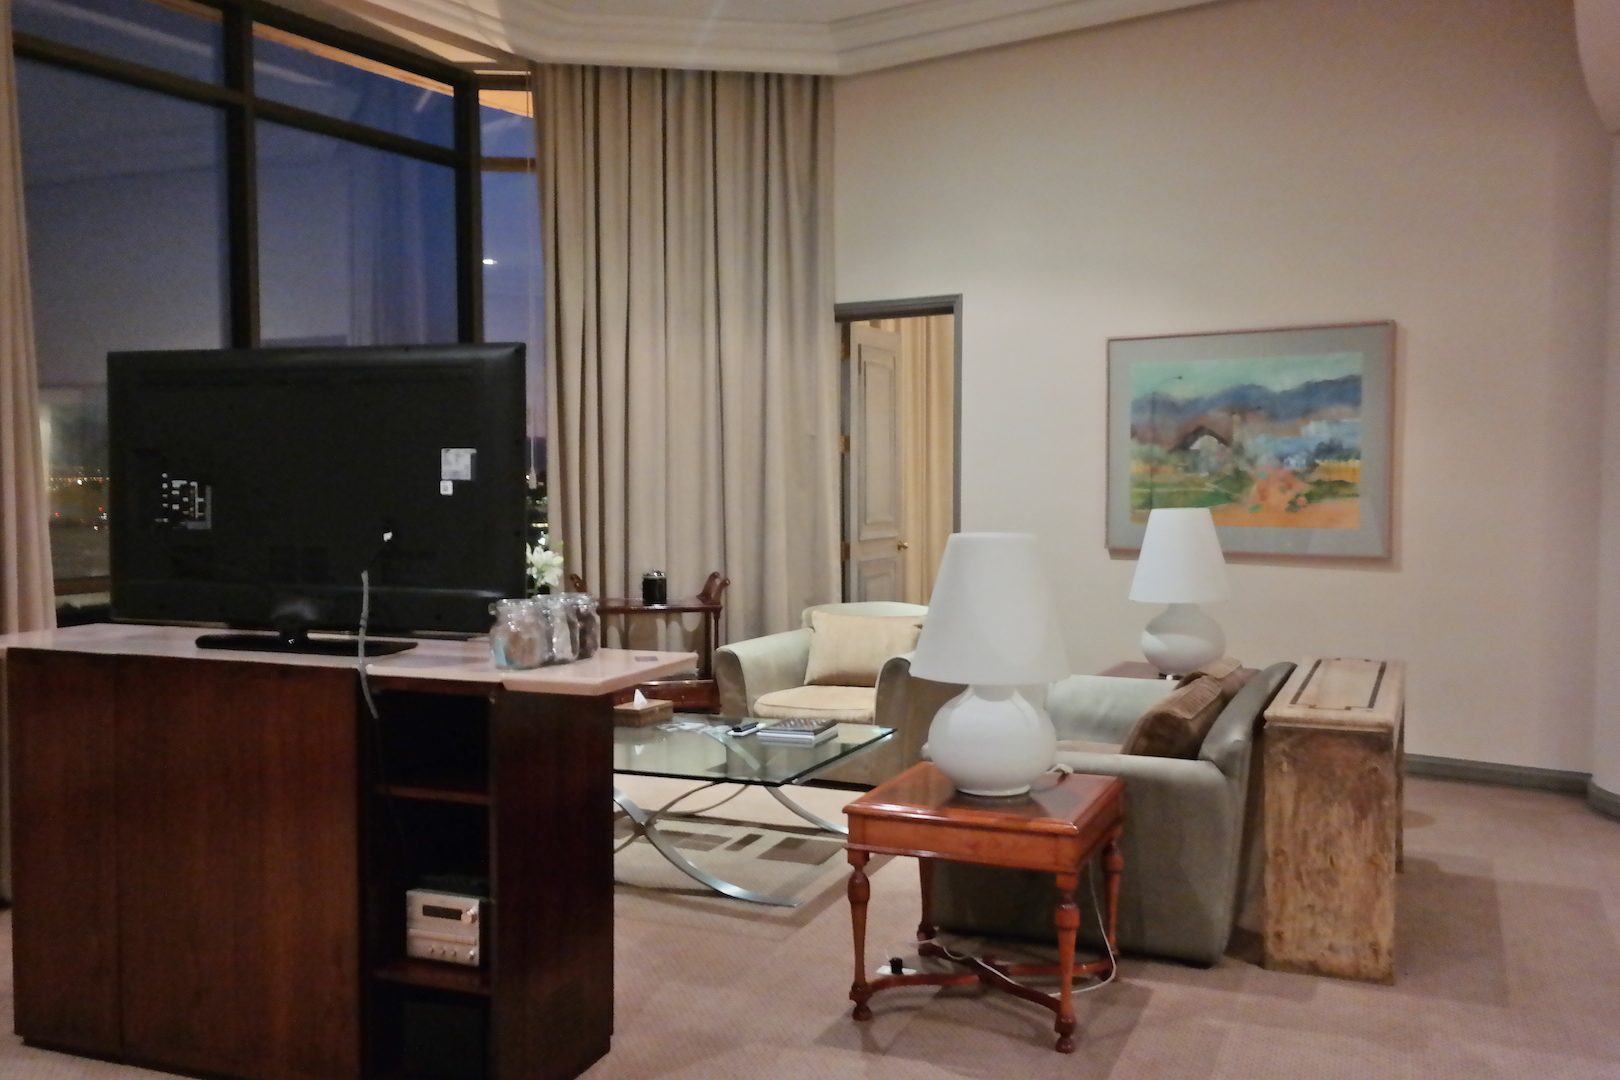 The Grand Hyatt Santiago Executive Room, Diplomatic Suite and Corner Terrace